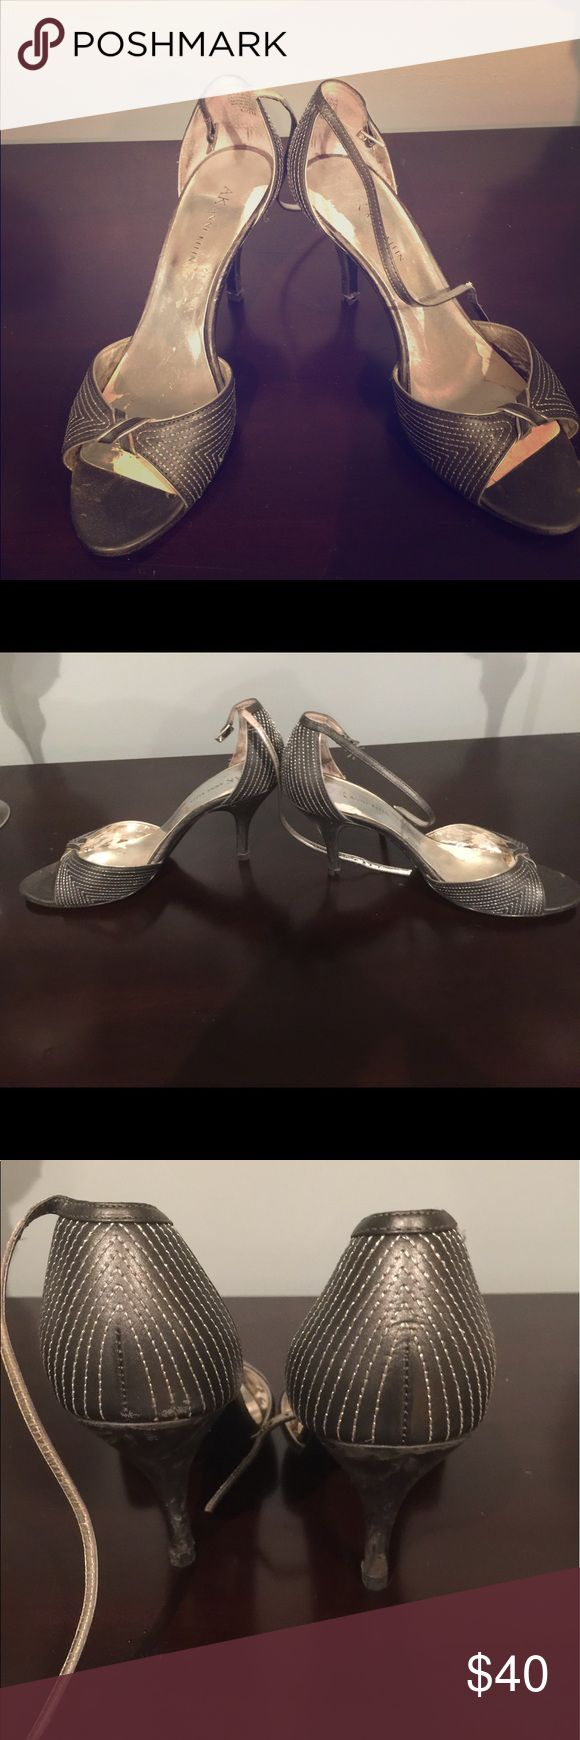 Anne Klein strappy silver sandal heels Pictures don't do these shoes justice - they are gorgeous! One of my favorite pairs but sadly must part with after my feet grew during pregnancy. My loss is your gain! Well loved with flaws, but lots of life left! Any offers welcome! Anne Klein Shoes Heels